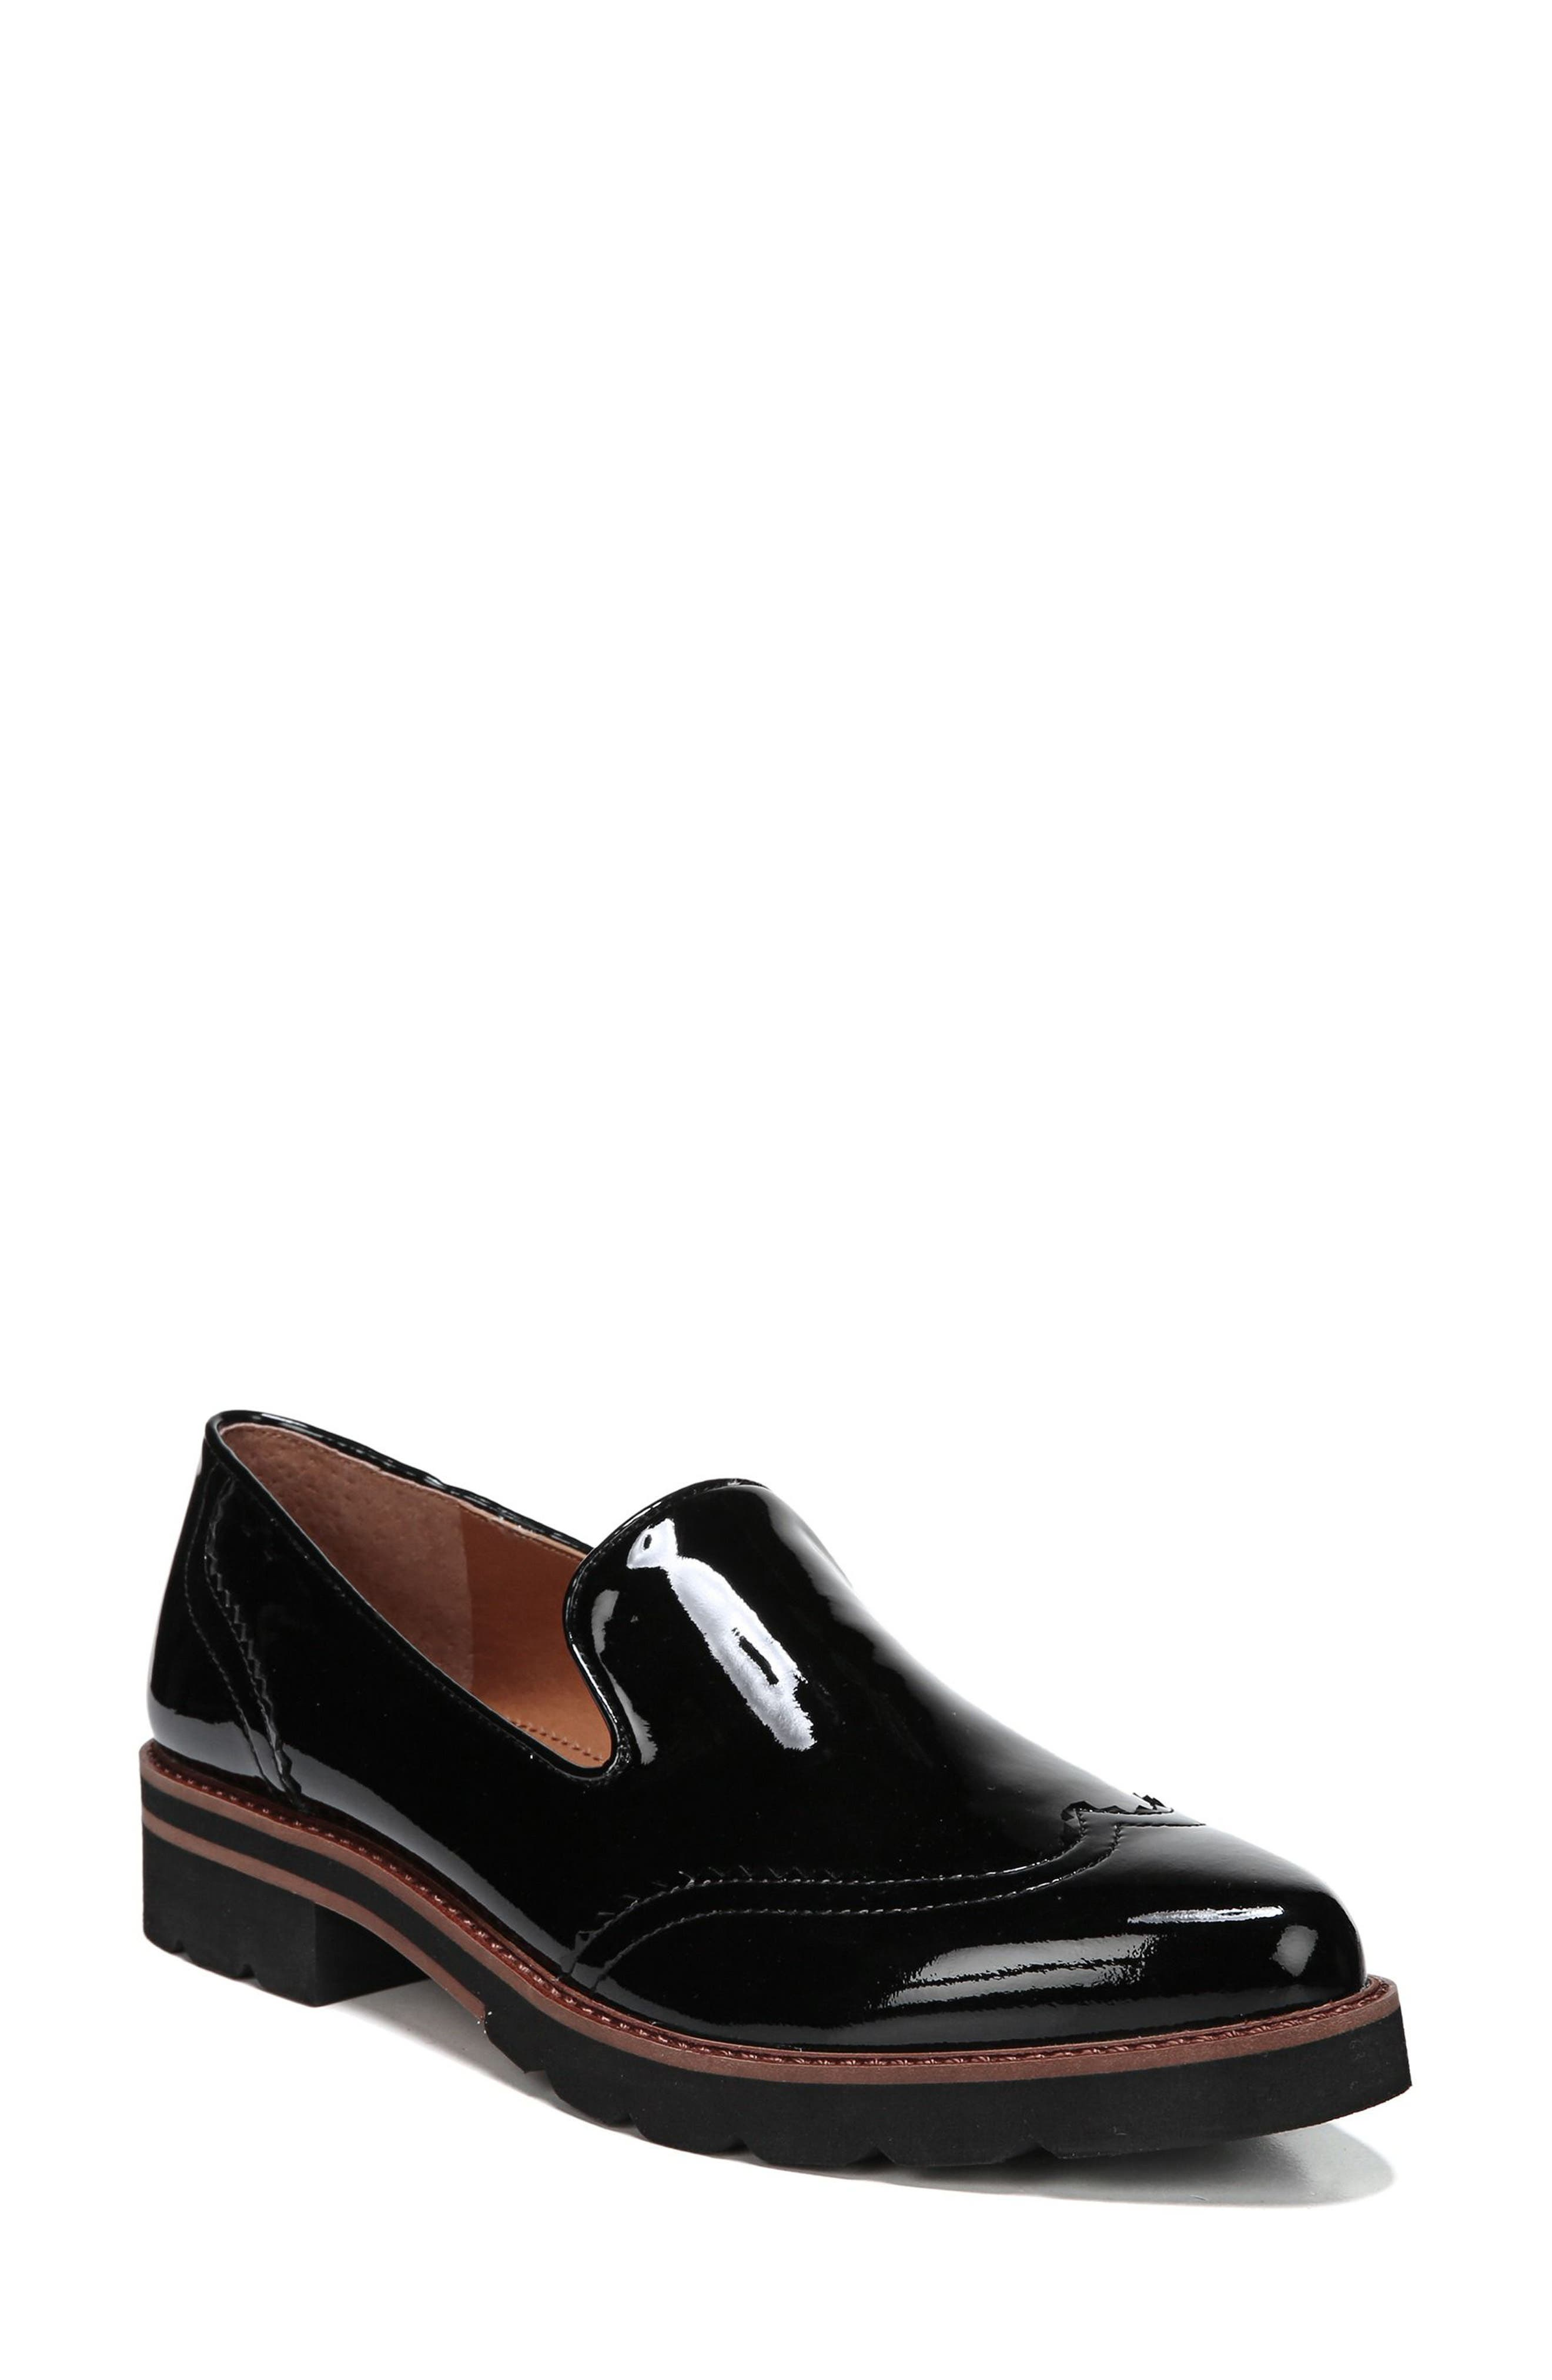 Betsy Loafer,                         Main,                         color, 002